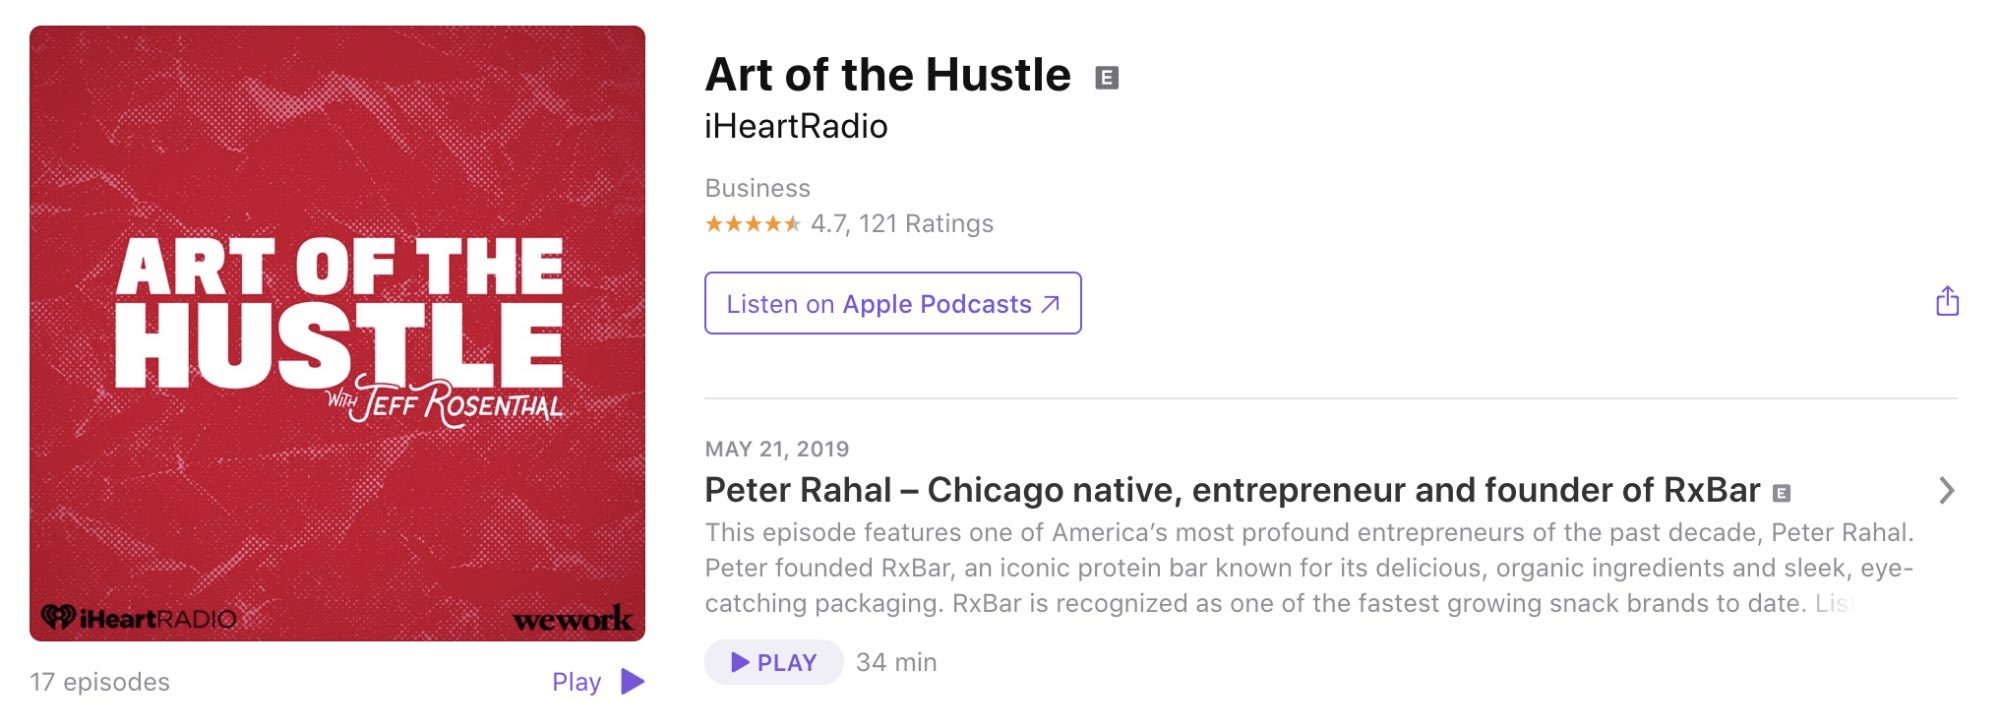 art of the hustle podcast